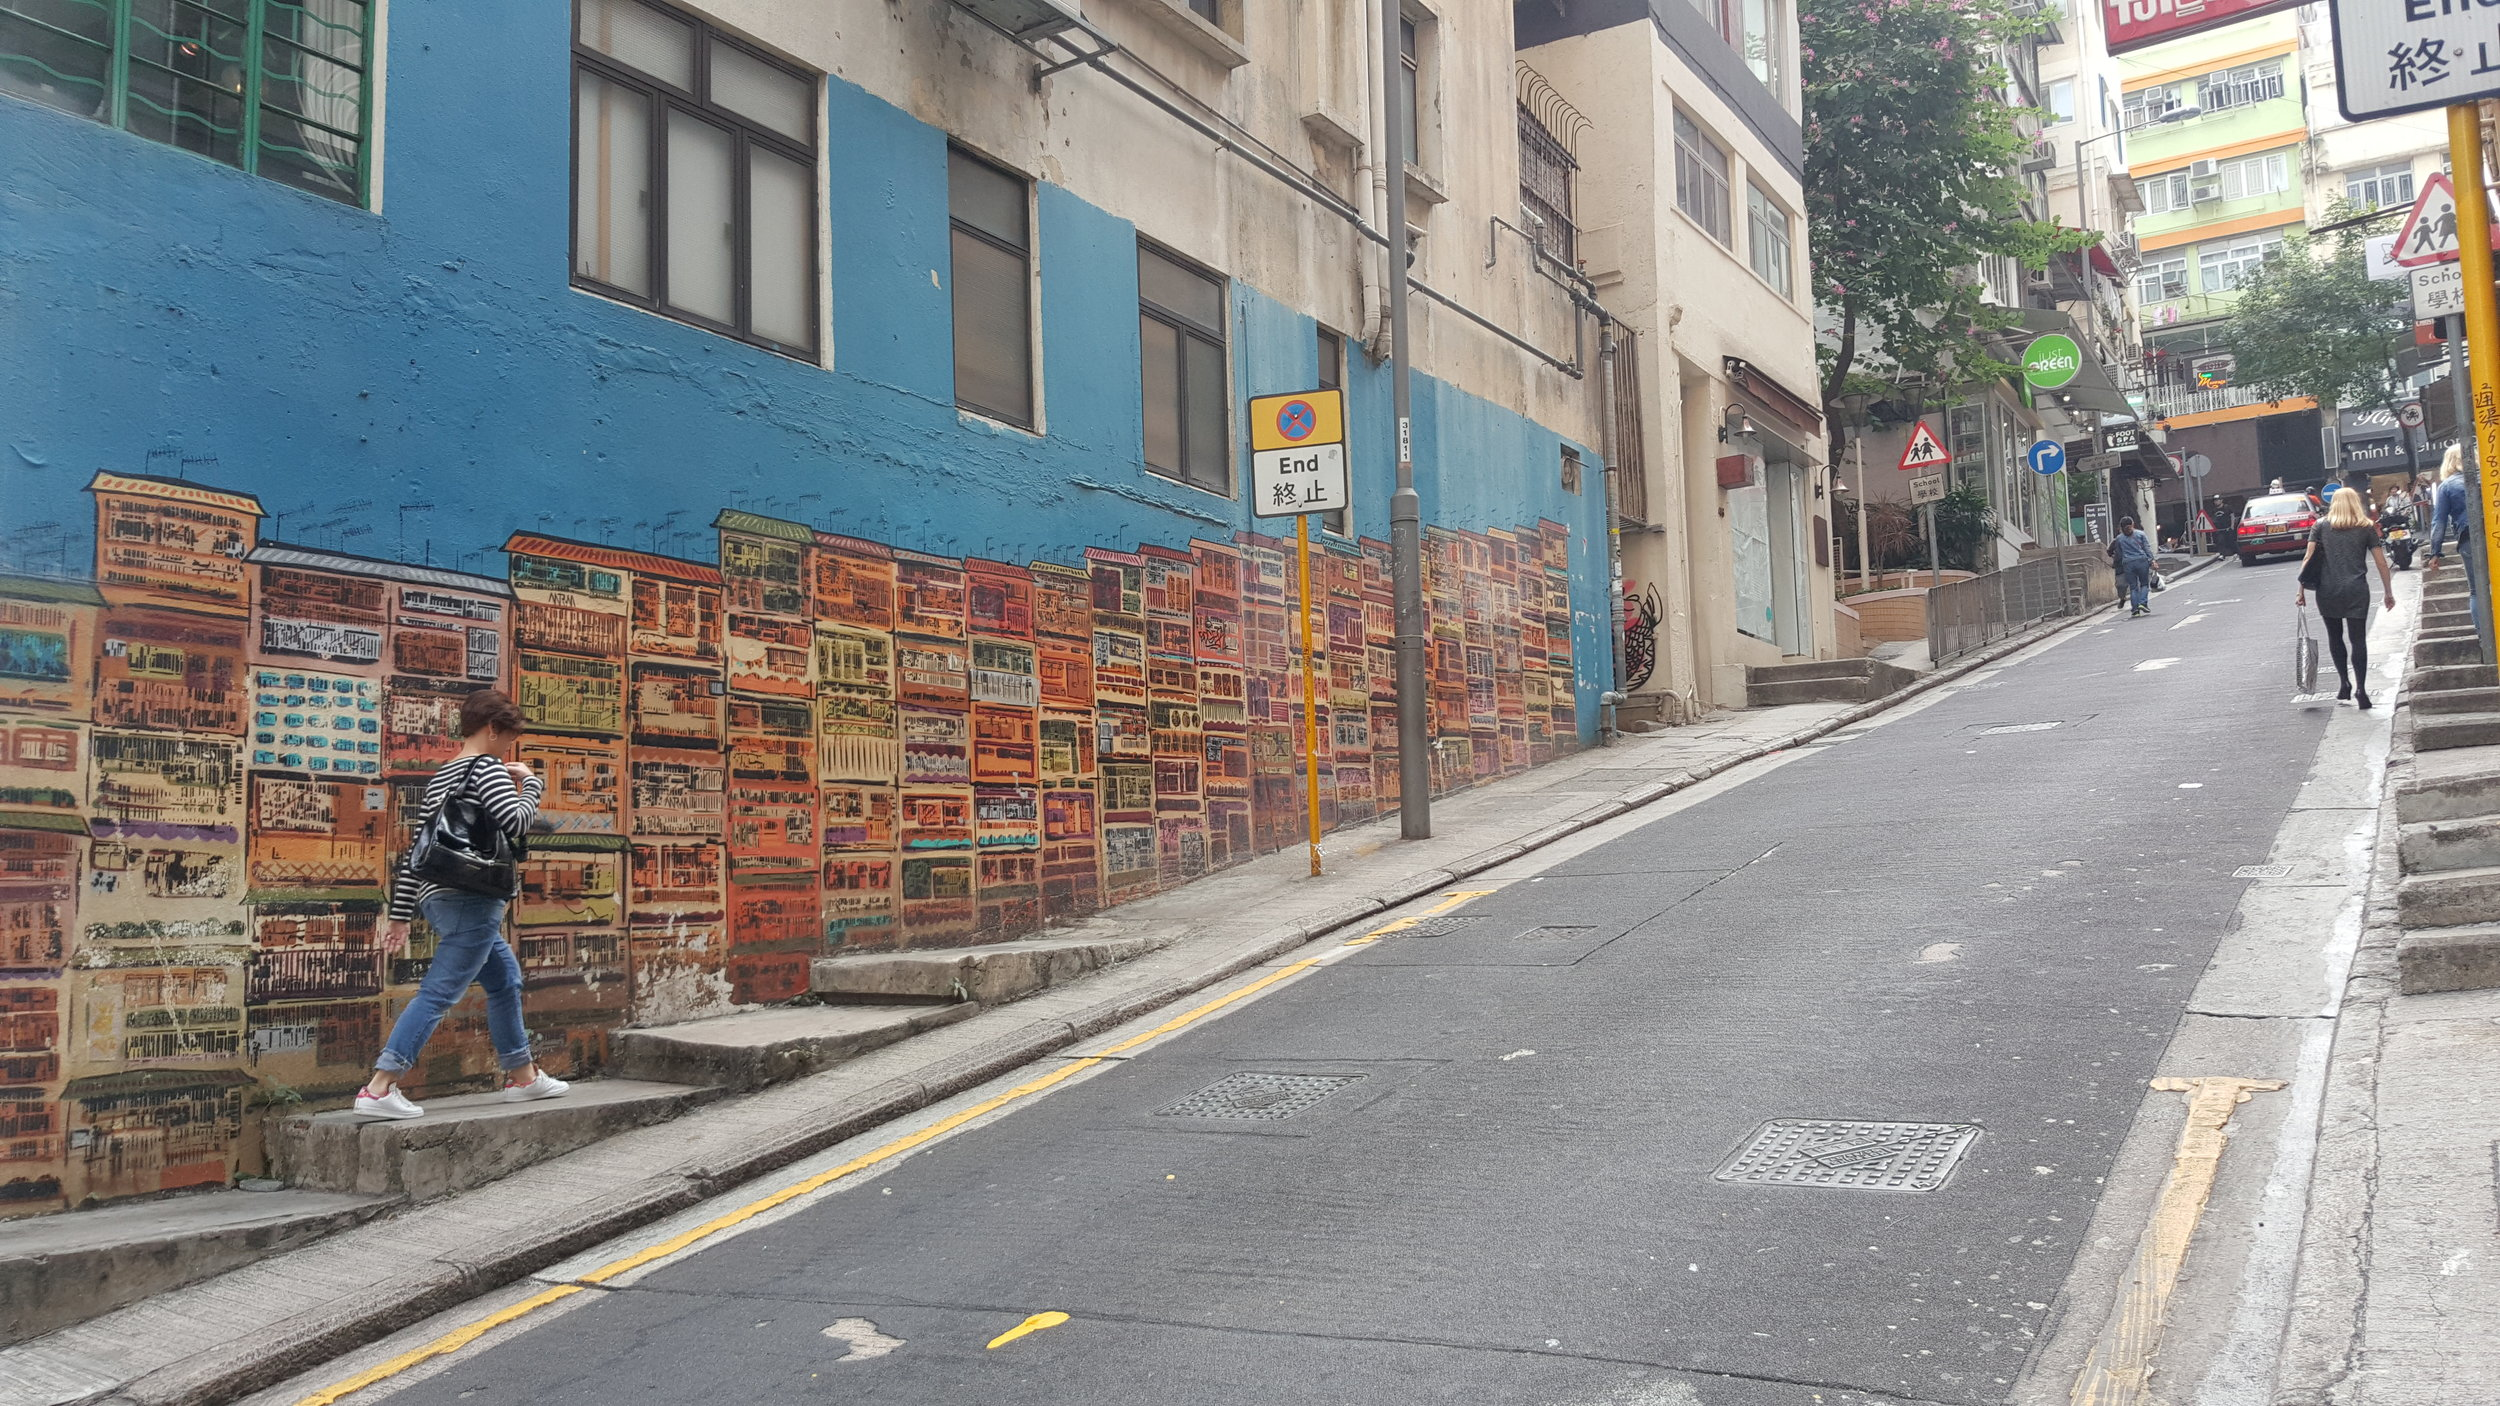 One of the more popular street arts in Sheung Wan